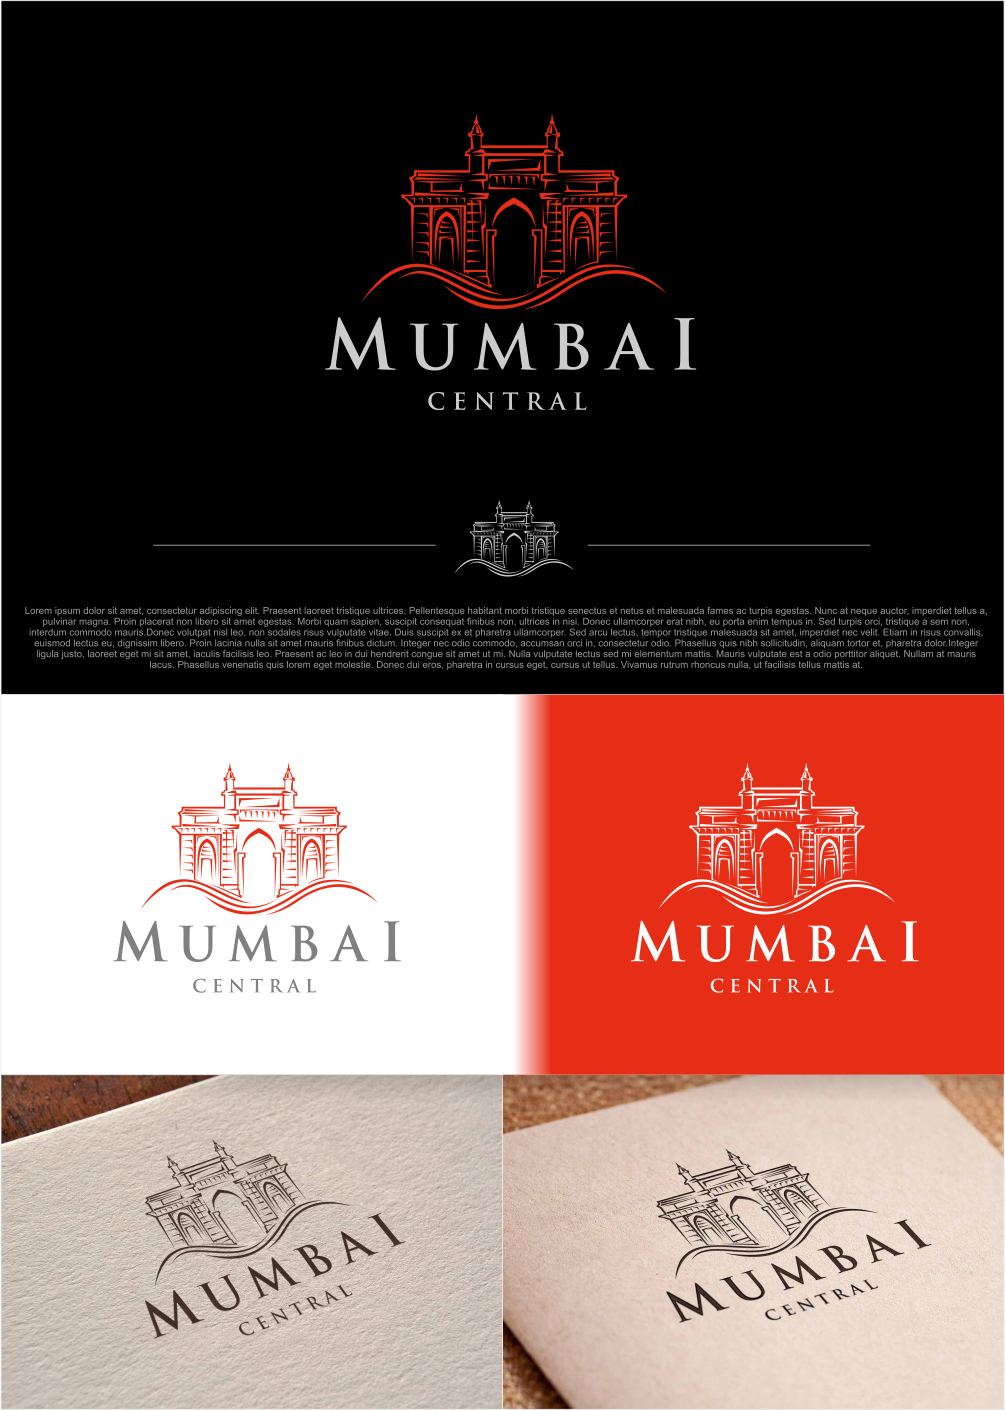 Personable, Serious, Indian Restaurant Logo Design for The